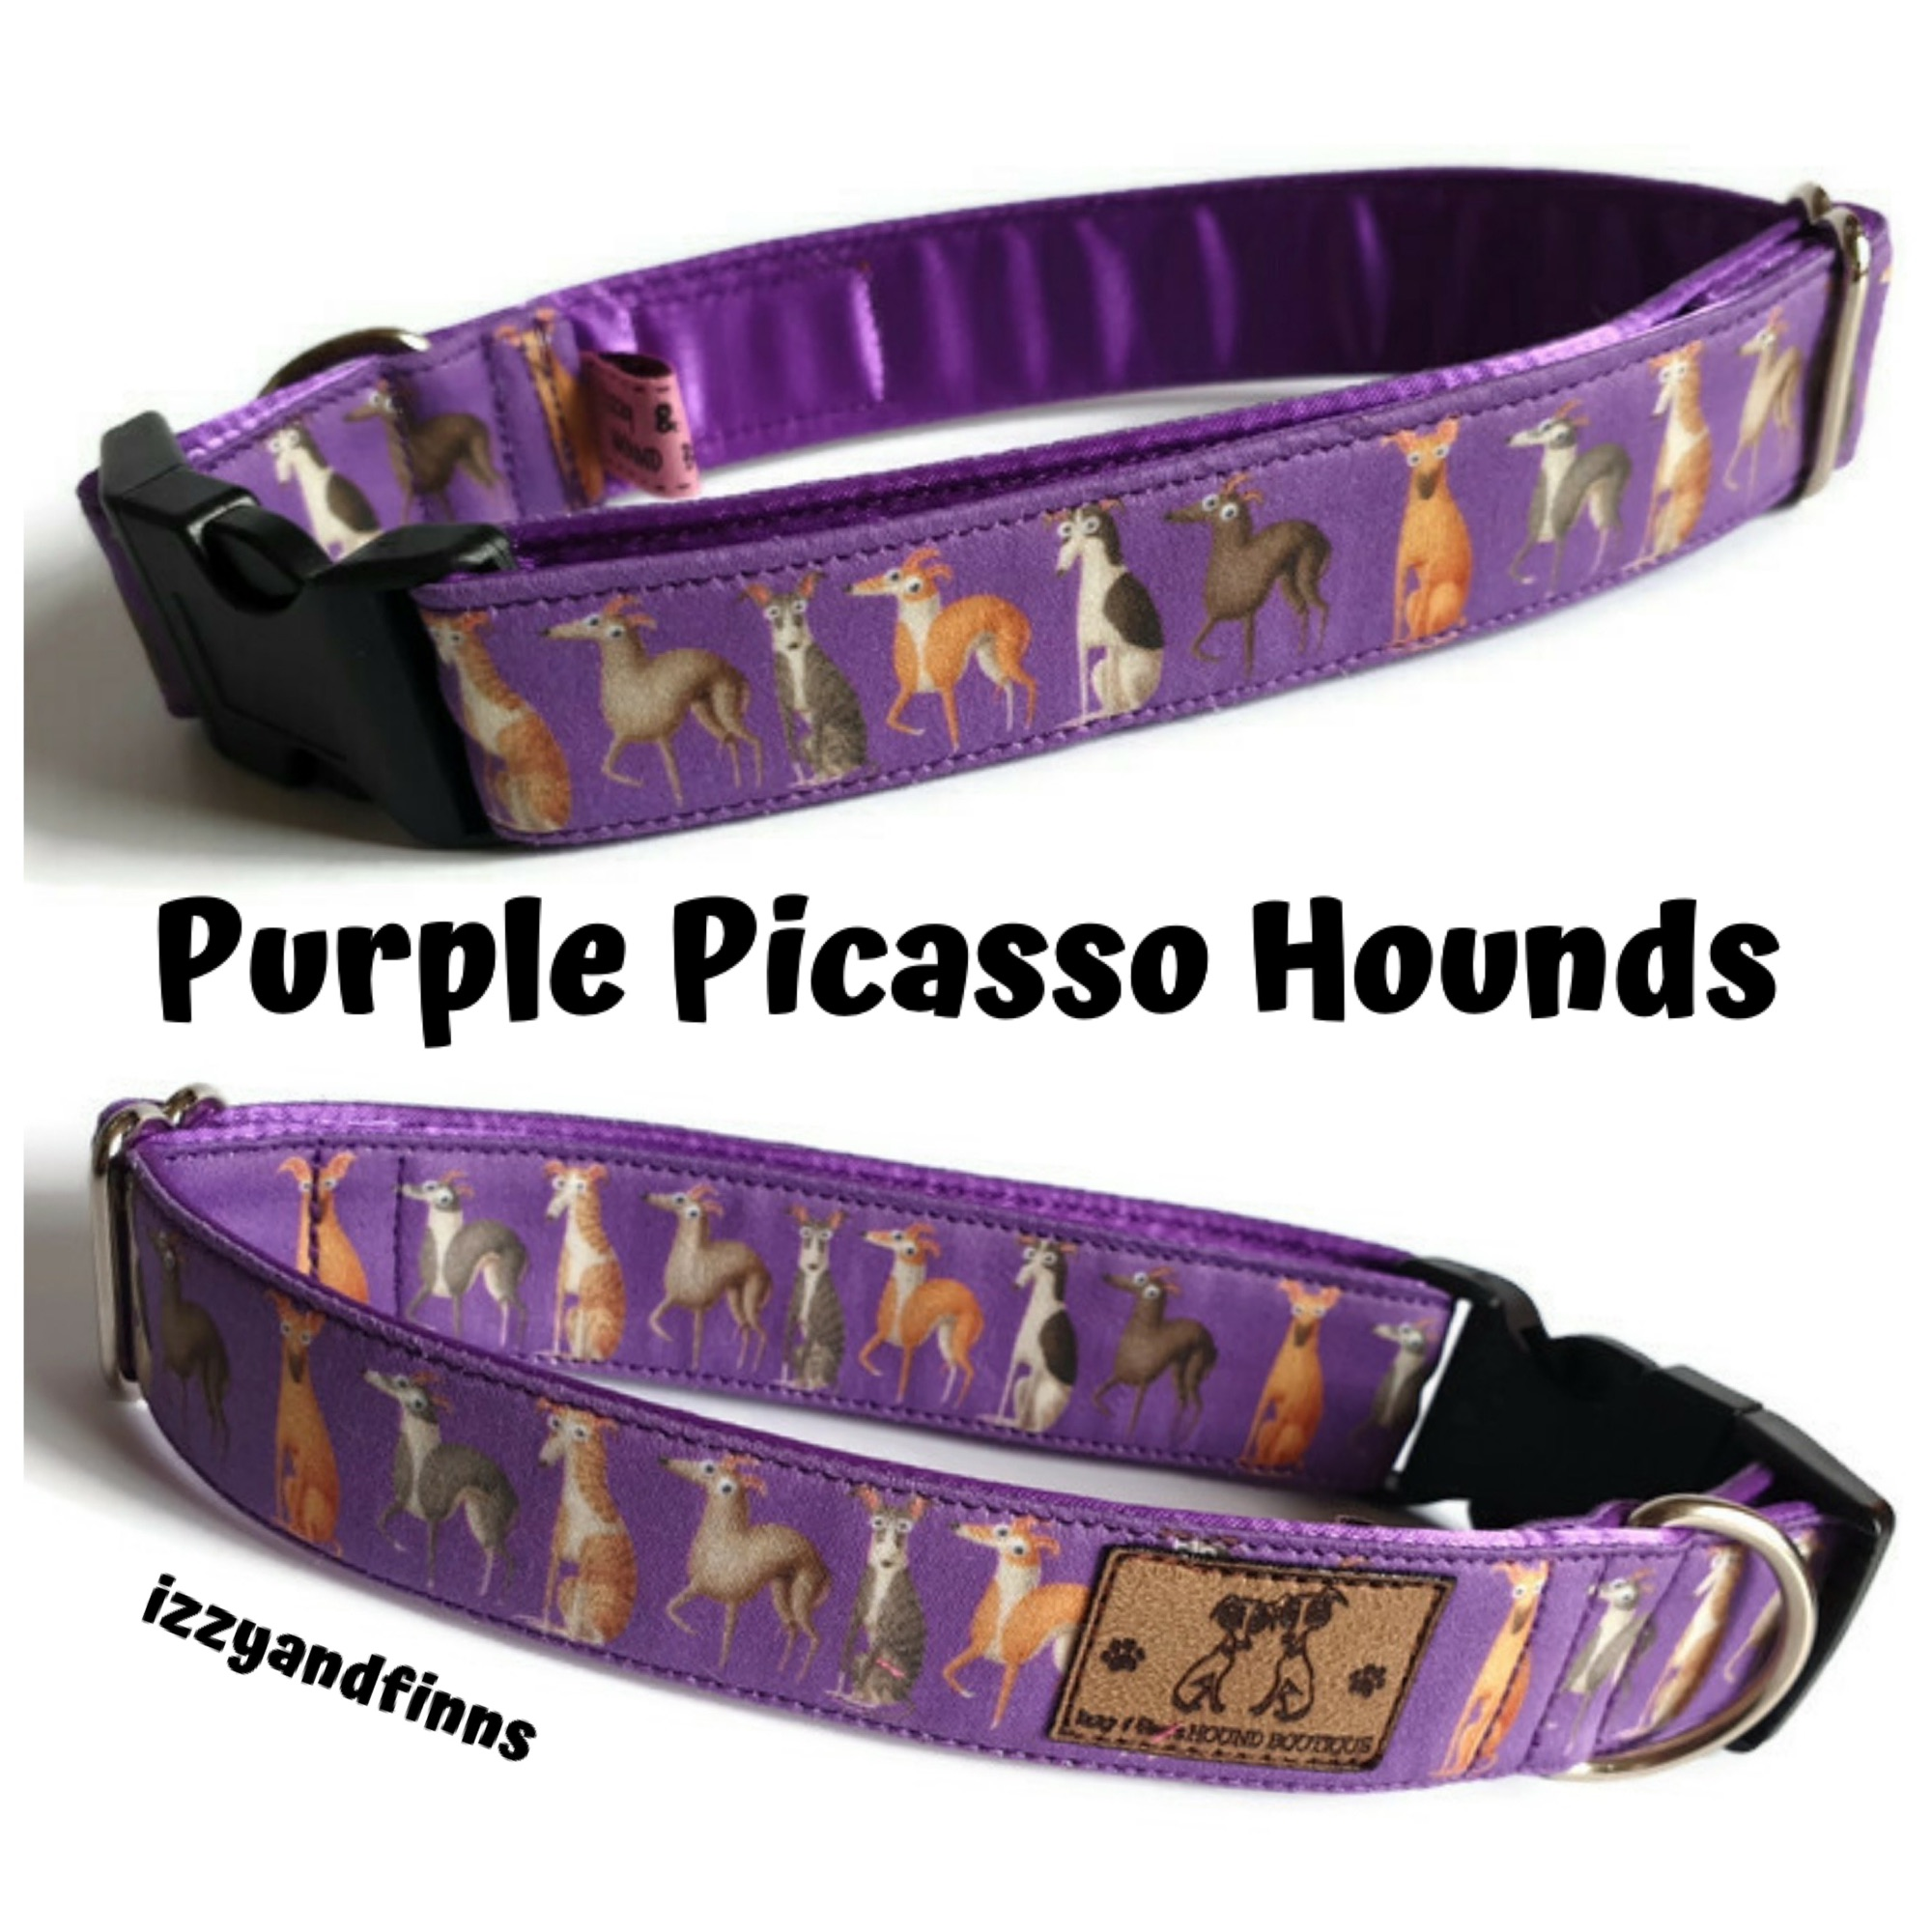 Purple Picasso Hounds